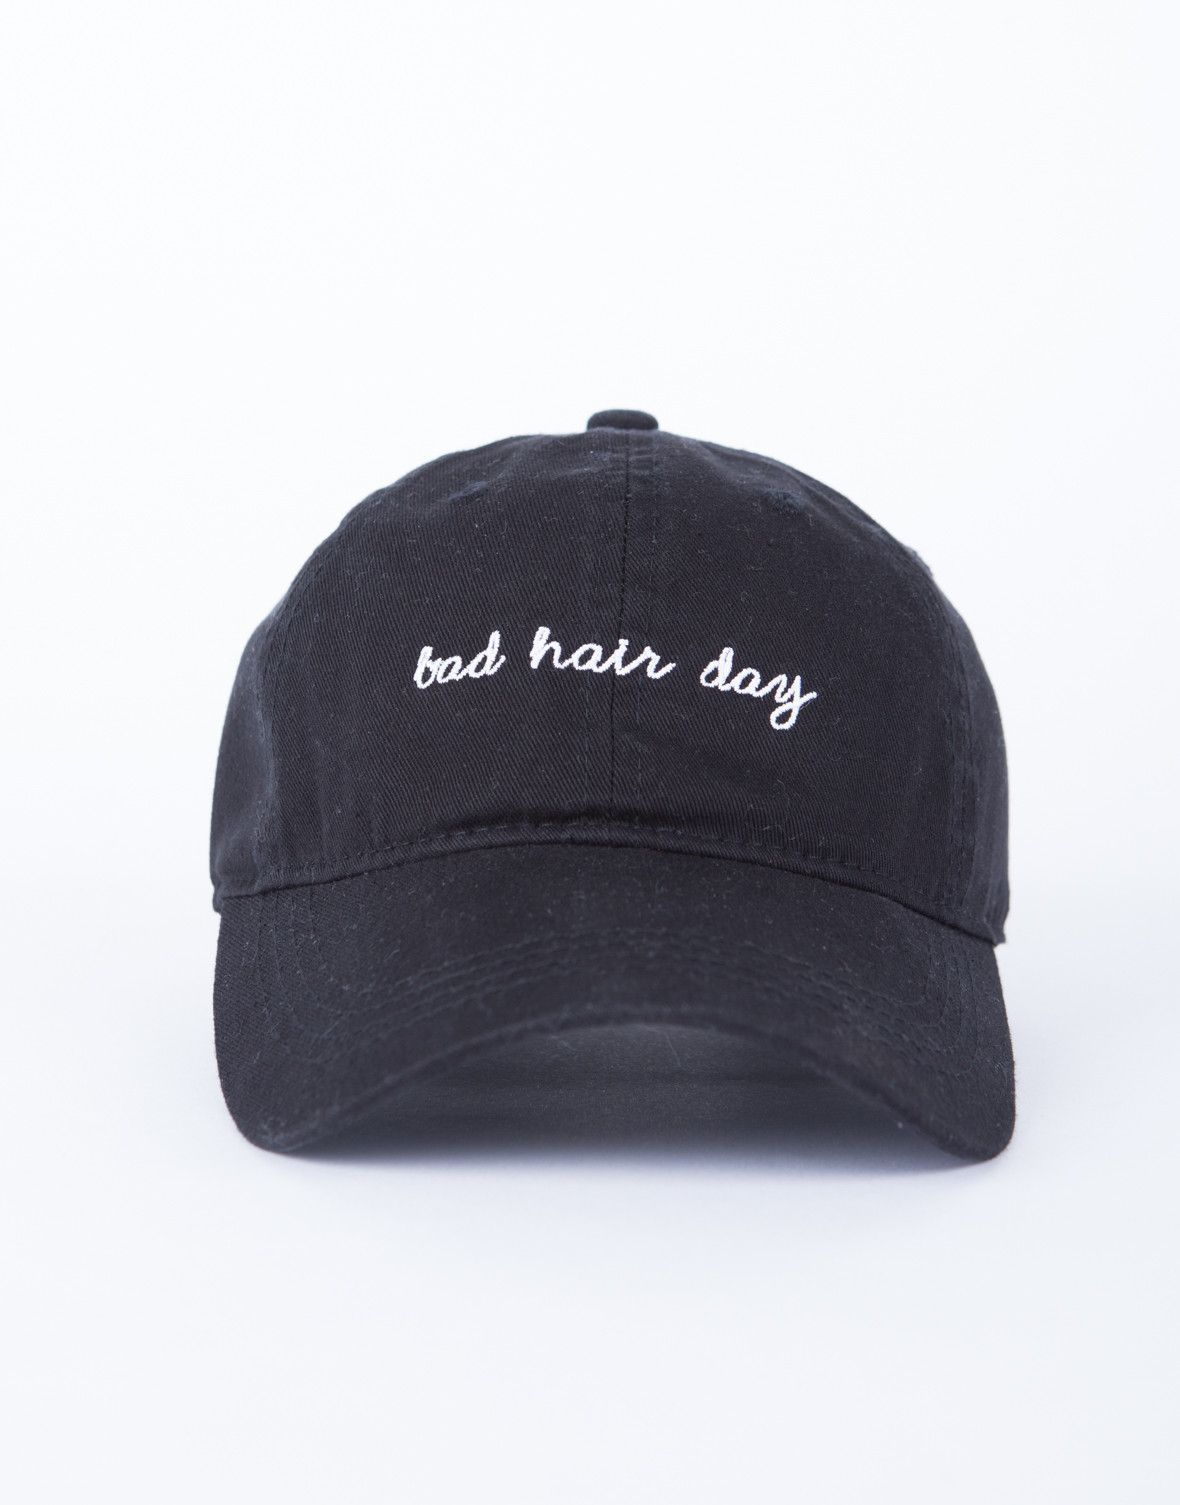 Bad Hair Day Cap -Black Baseball Cap - Embroidered Patch Hat – 2020AVE